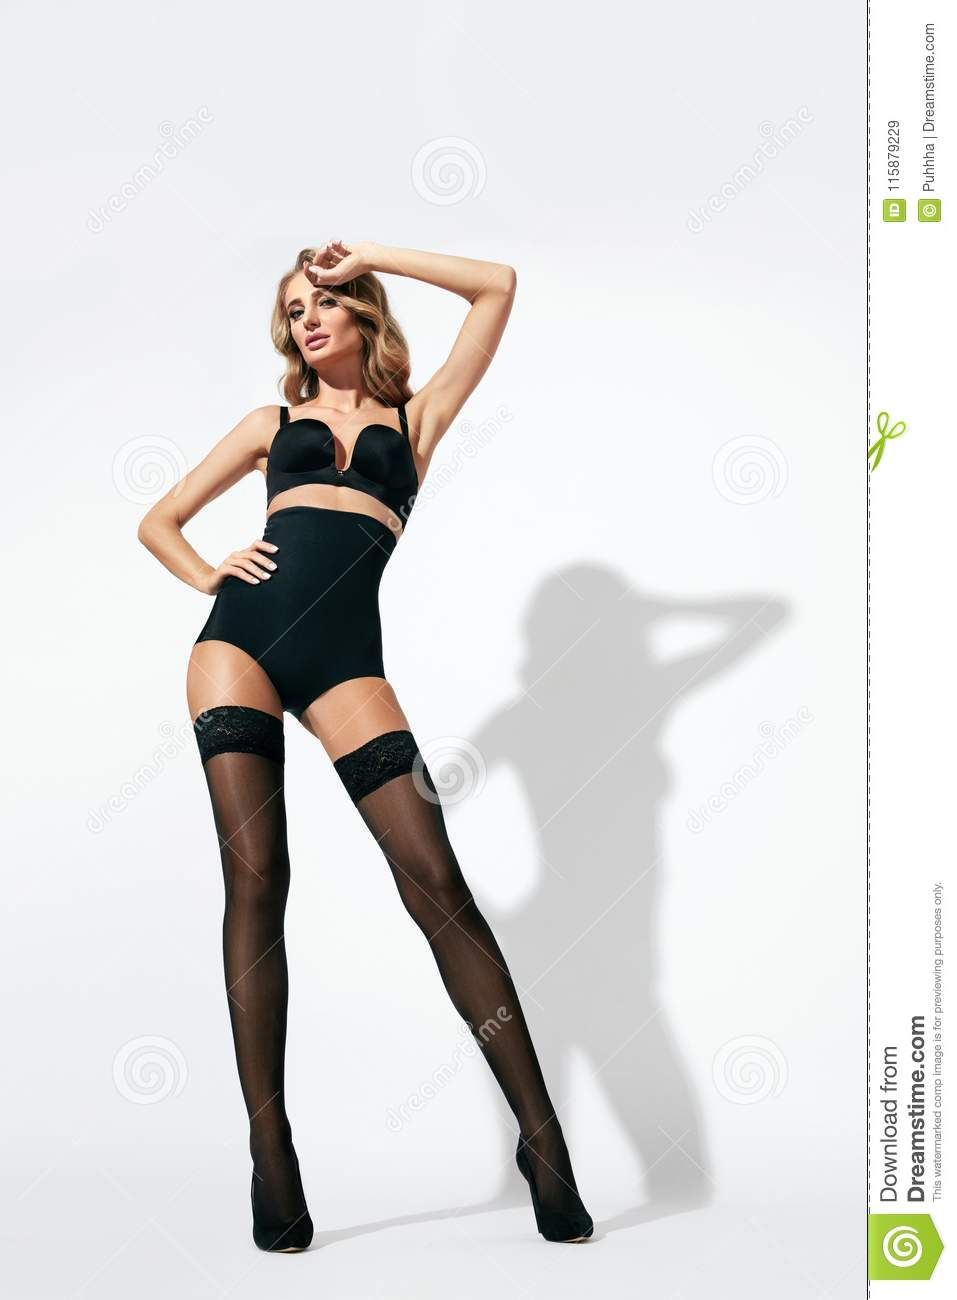 Join. was beautiful long legs lingerie stockings speaking, opinion